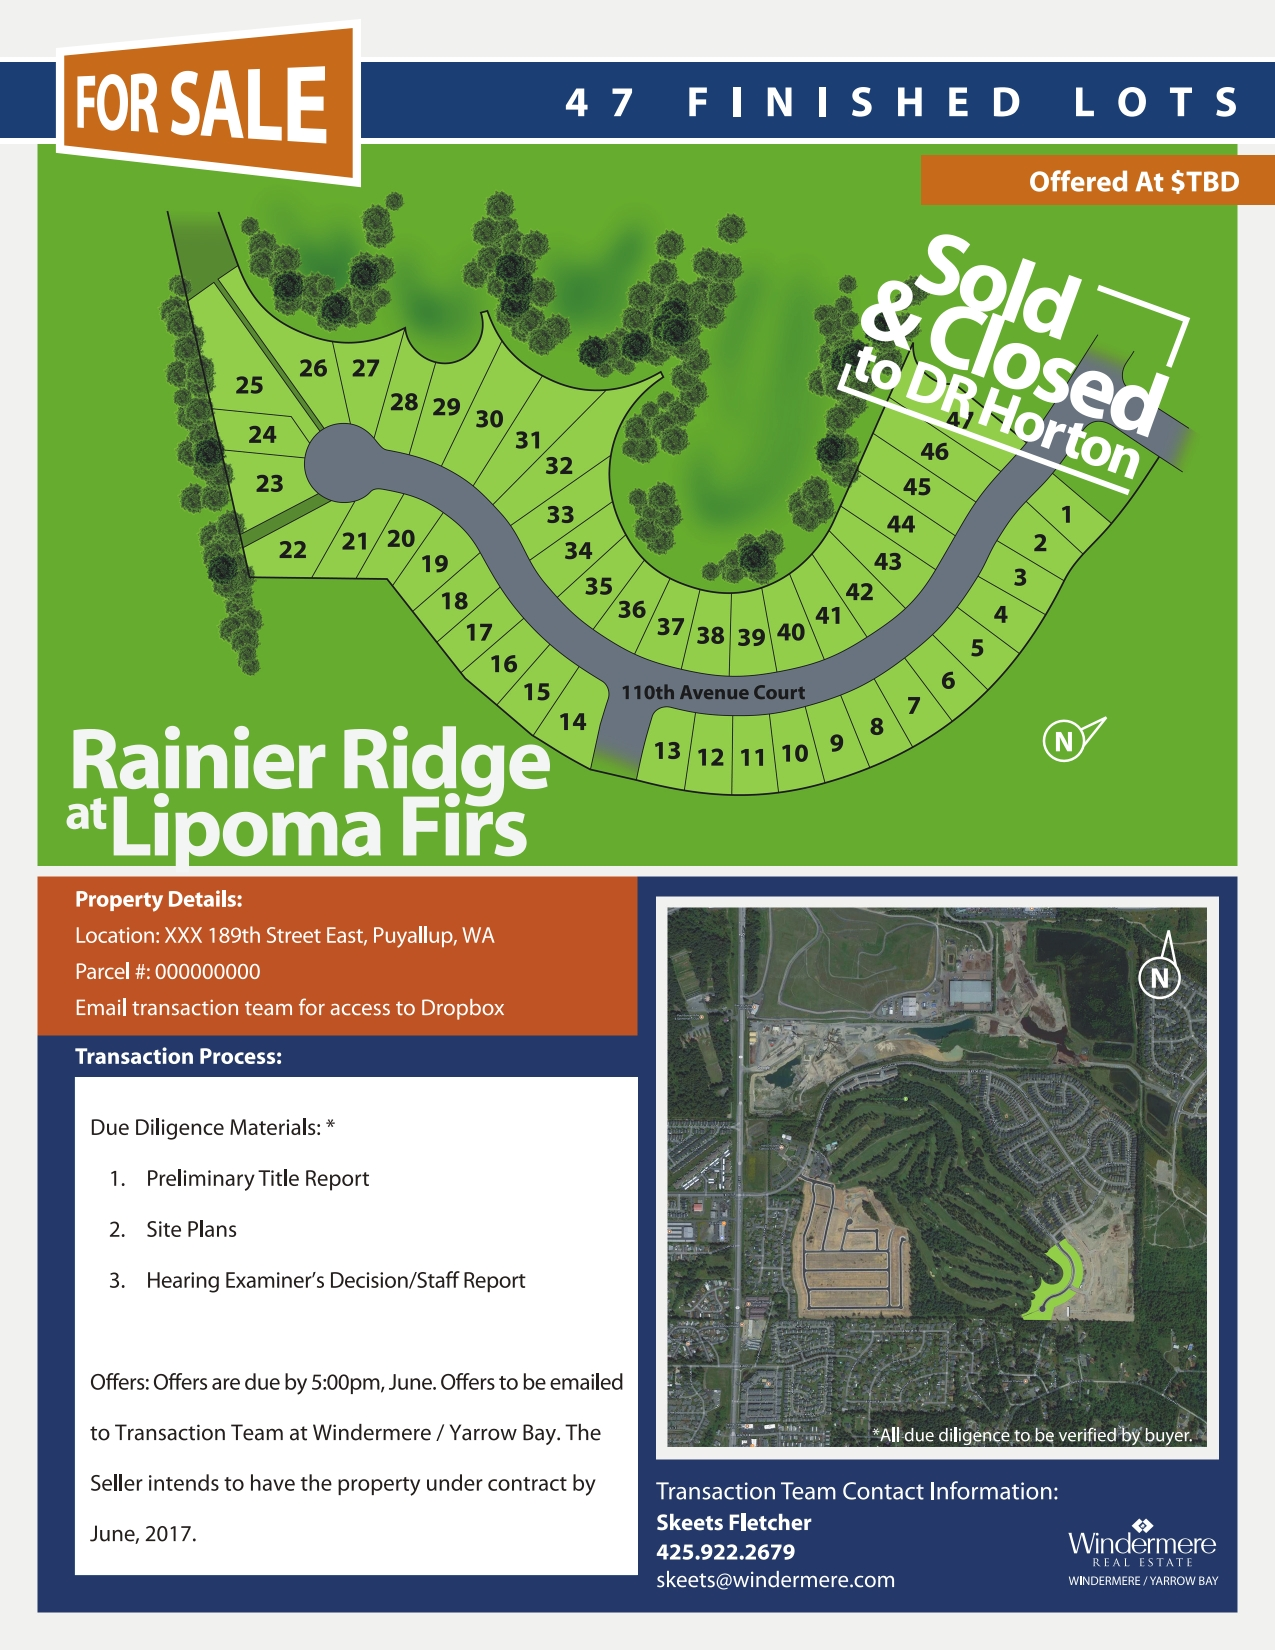 7.16.18 Mktg Flyer Rainier Rdg Sold DRH_001